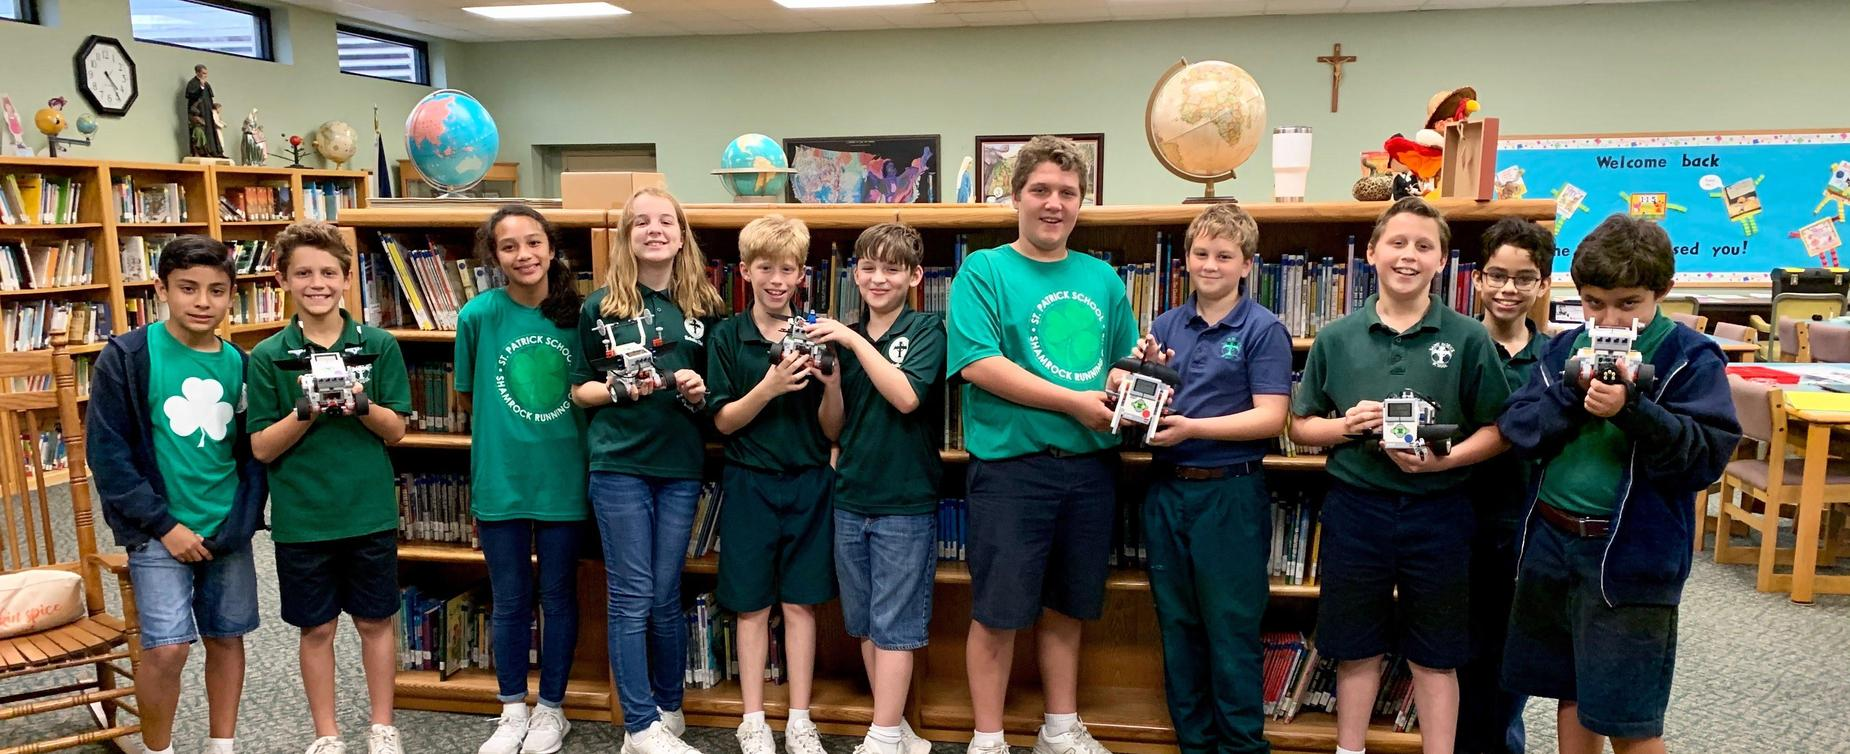 Student Innovators with Robots